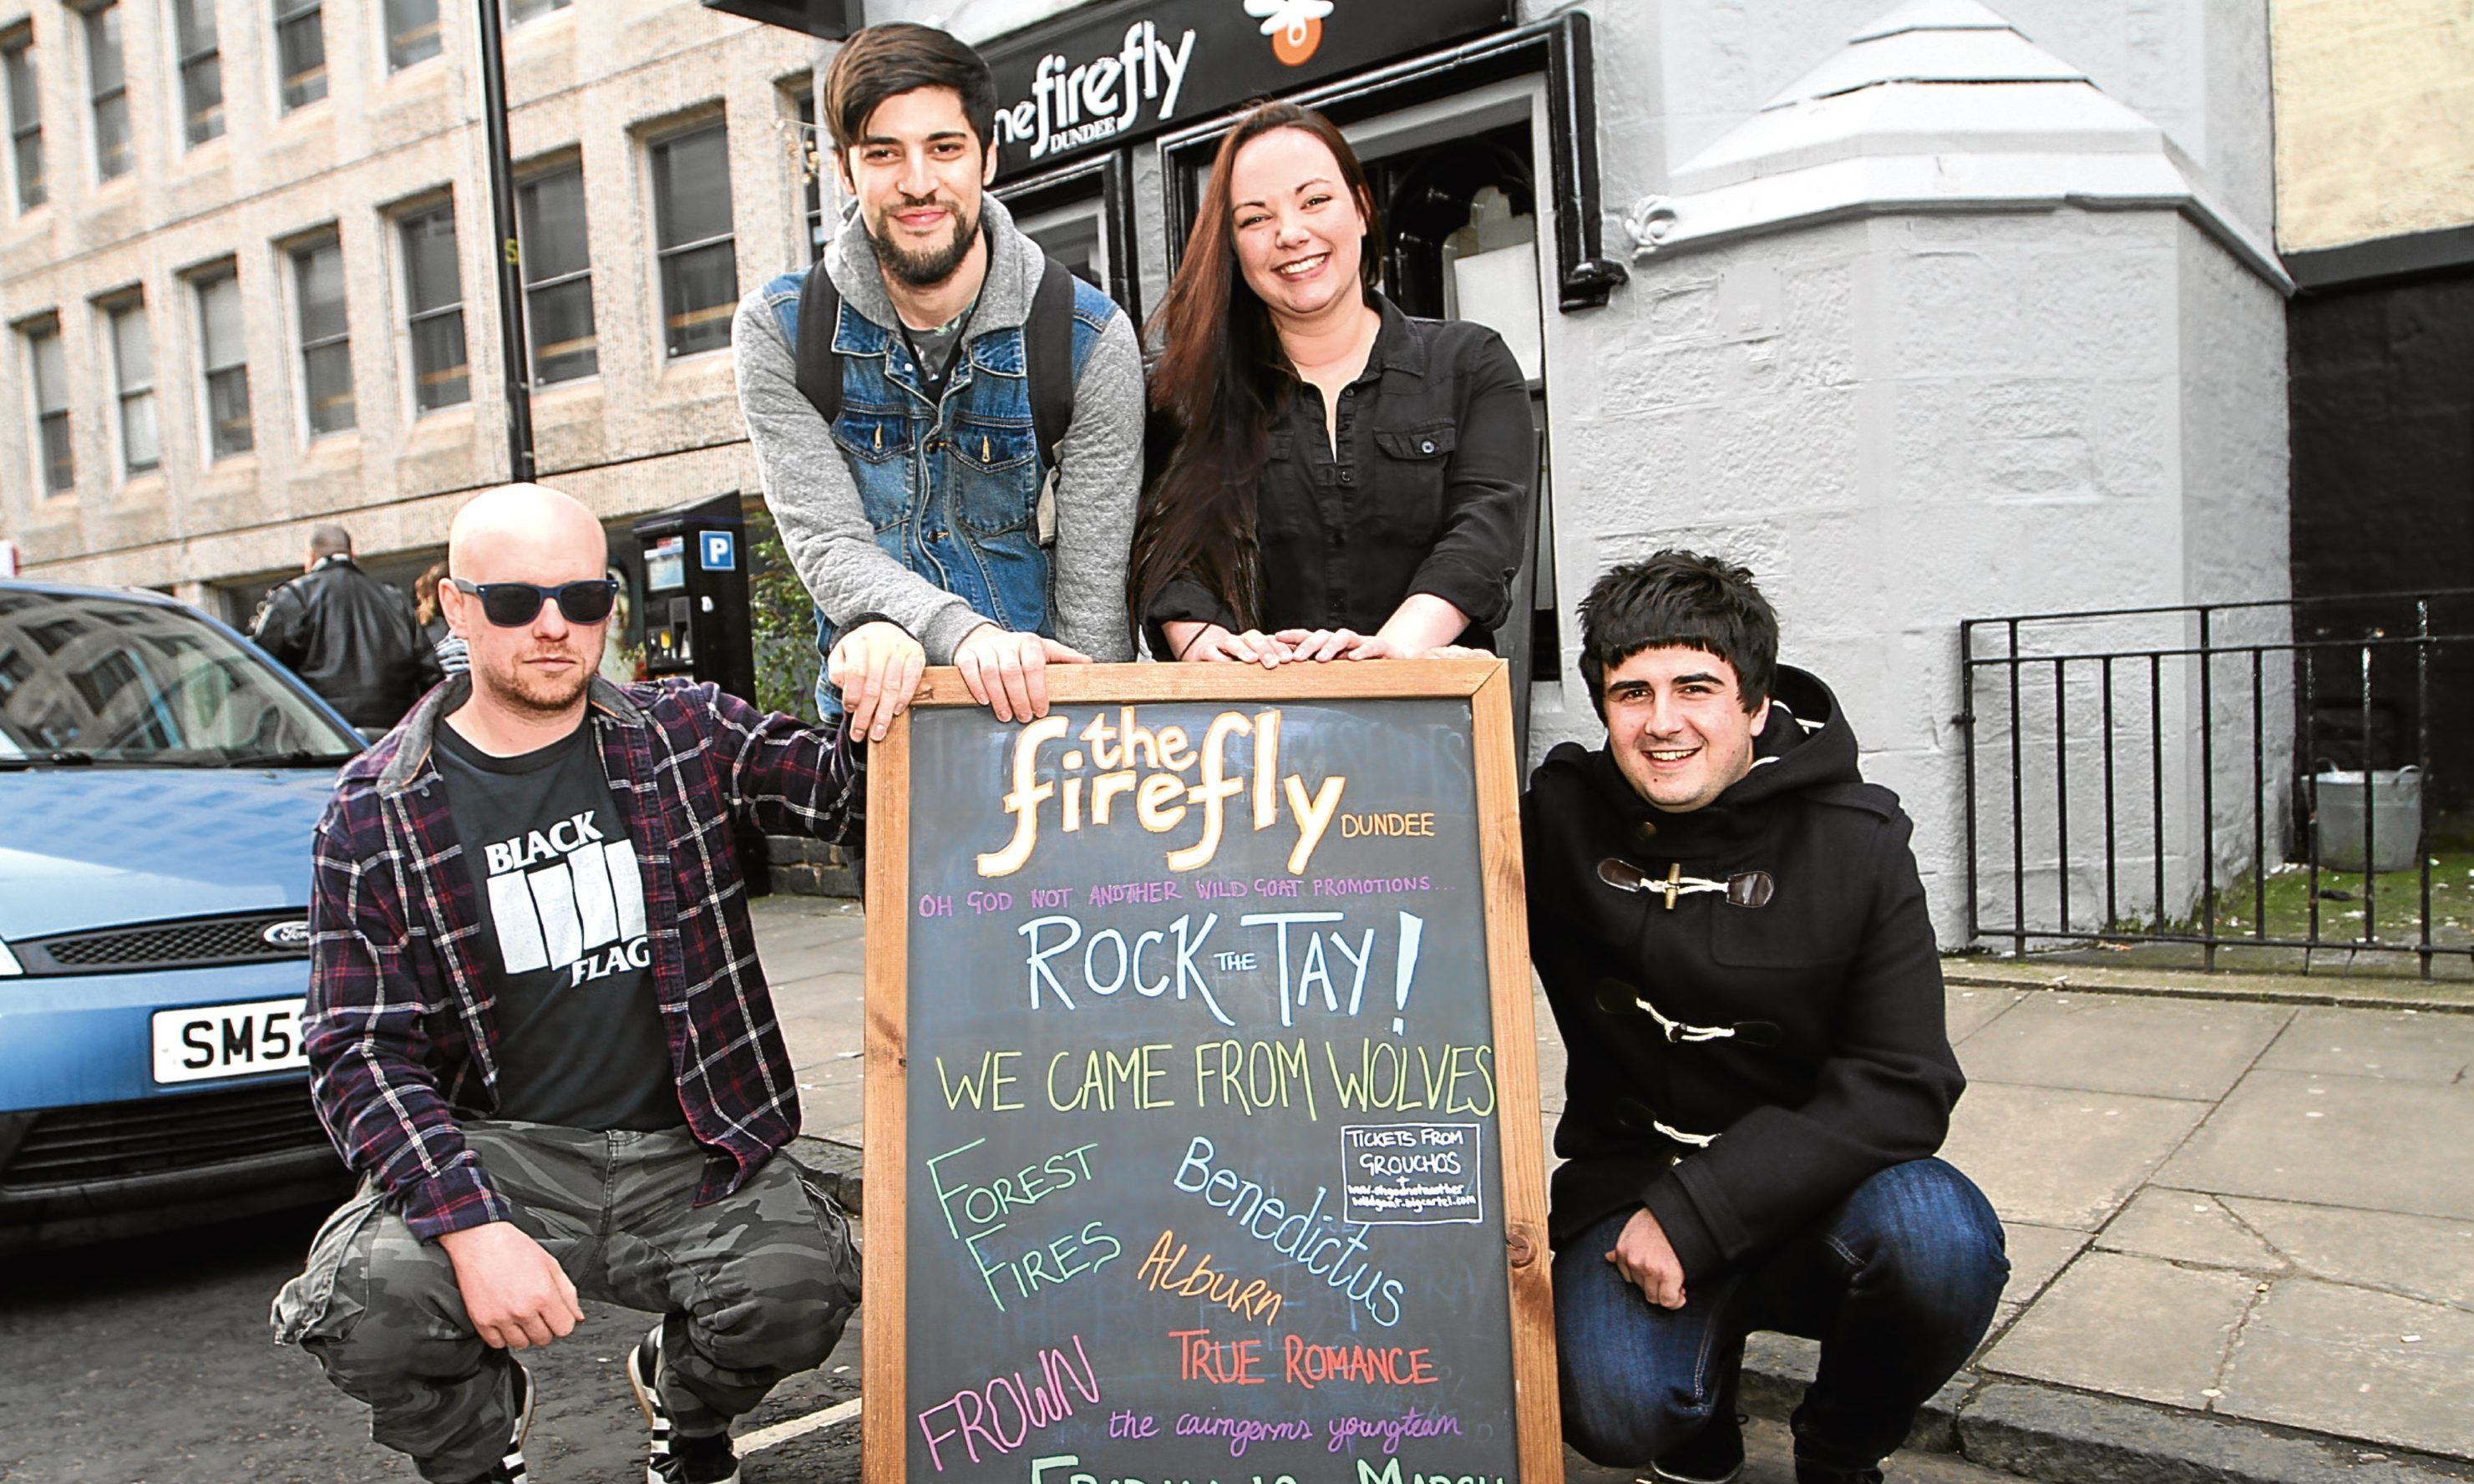 Pictured, from left, Sean Cairns, of The Cairngorms Youngteam, promoter Andy Mcdonald, owner of Firefly Roseanne Crowe and musician Owen Bryce.